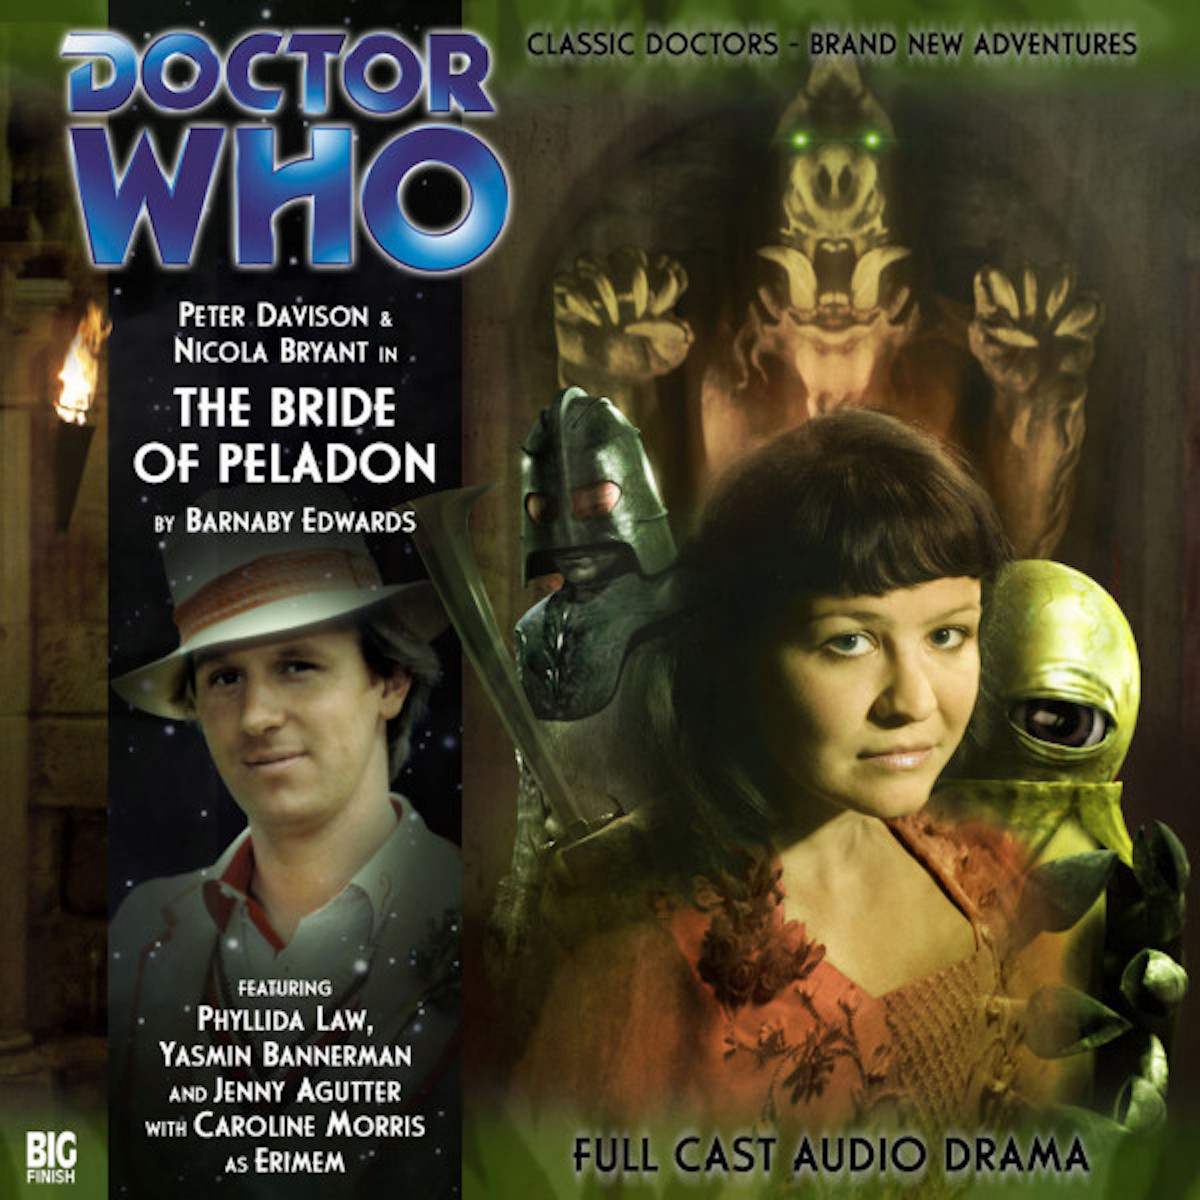 The Bride of Peladon